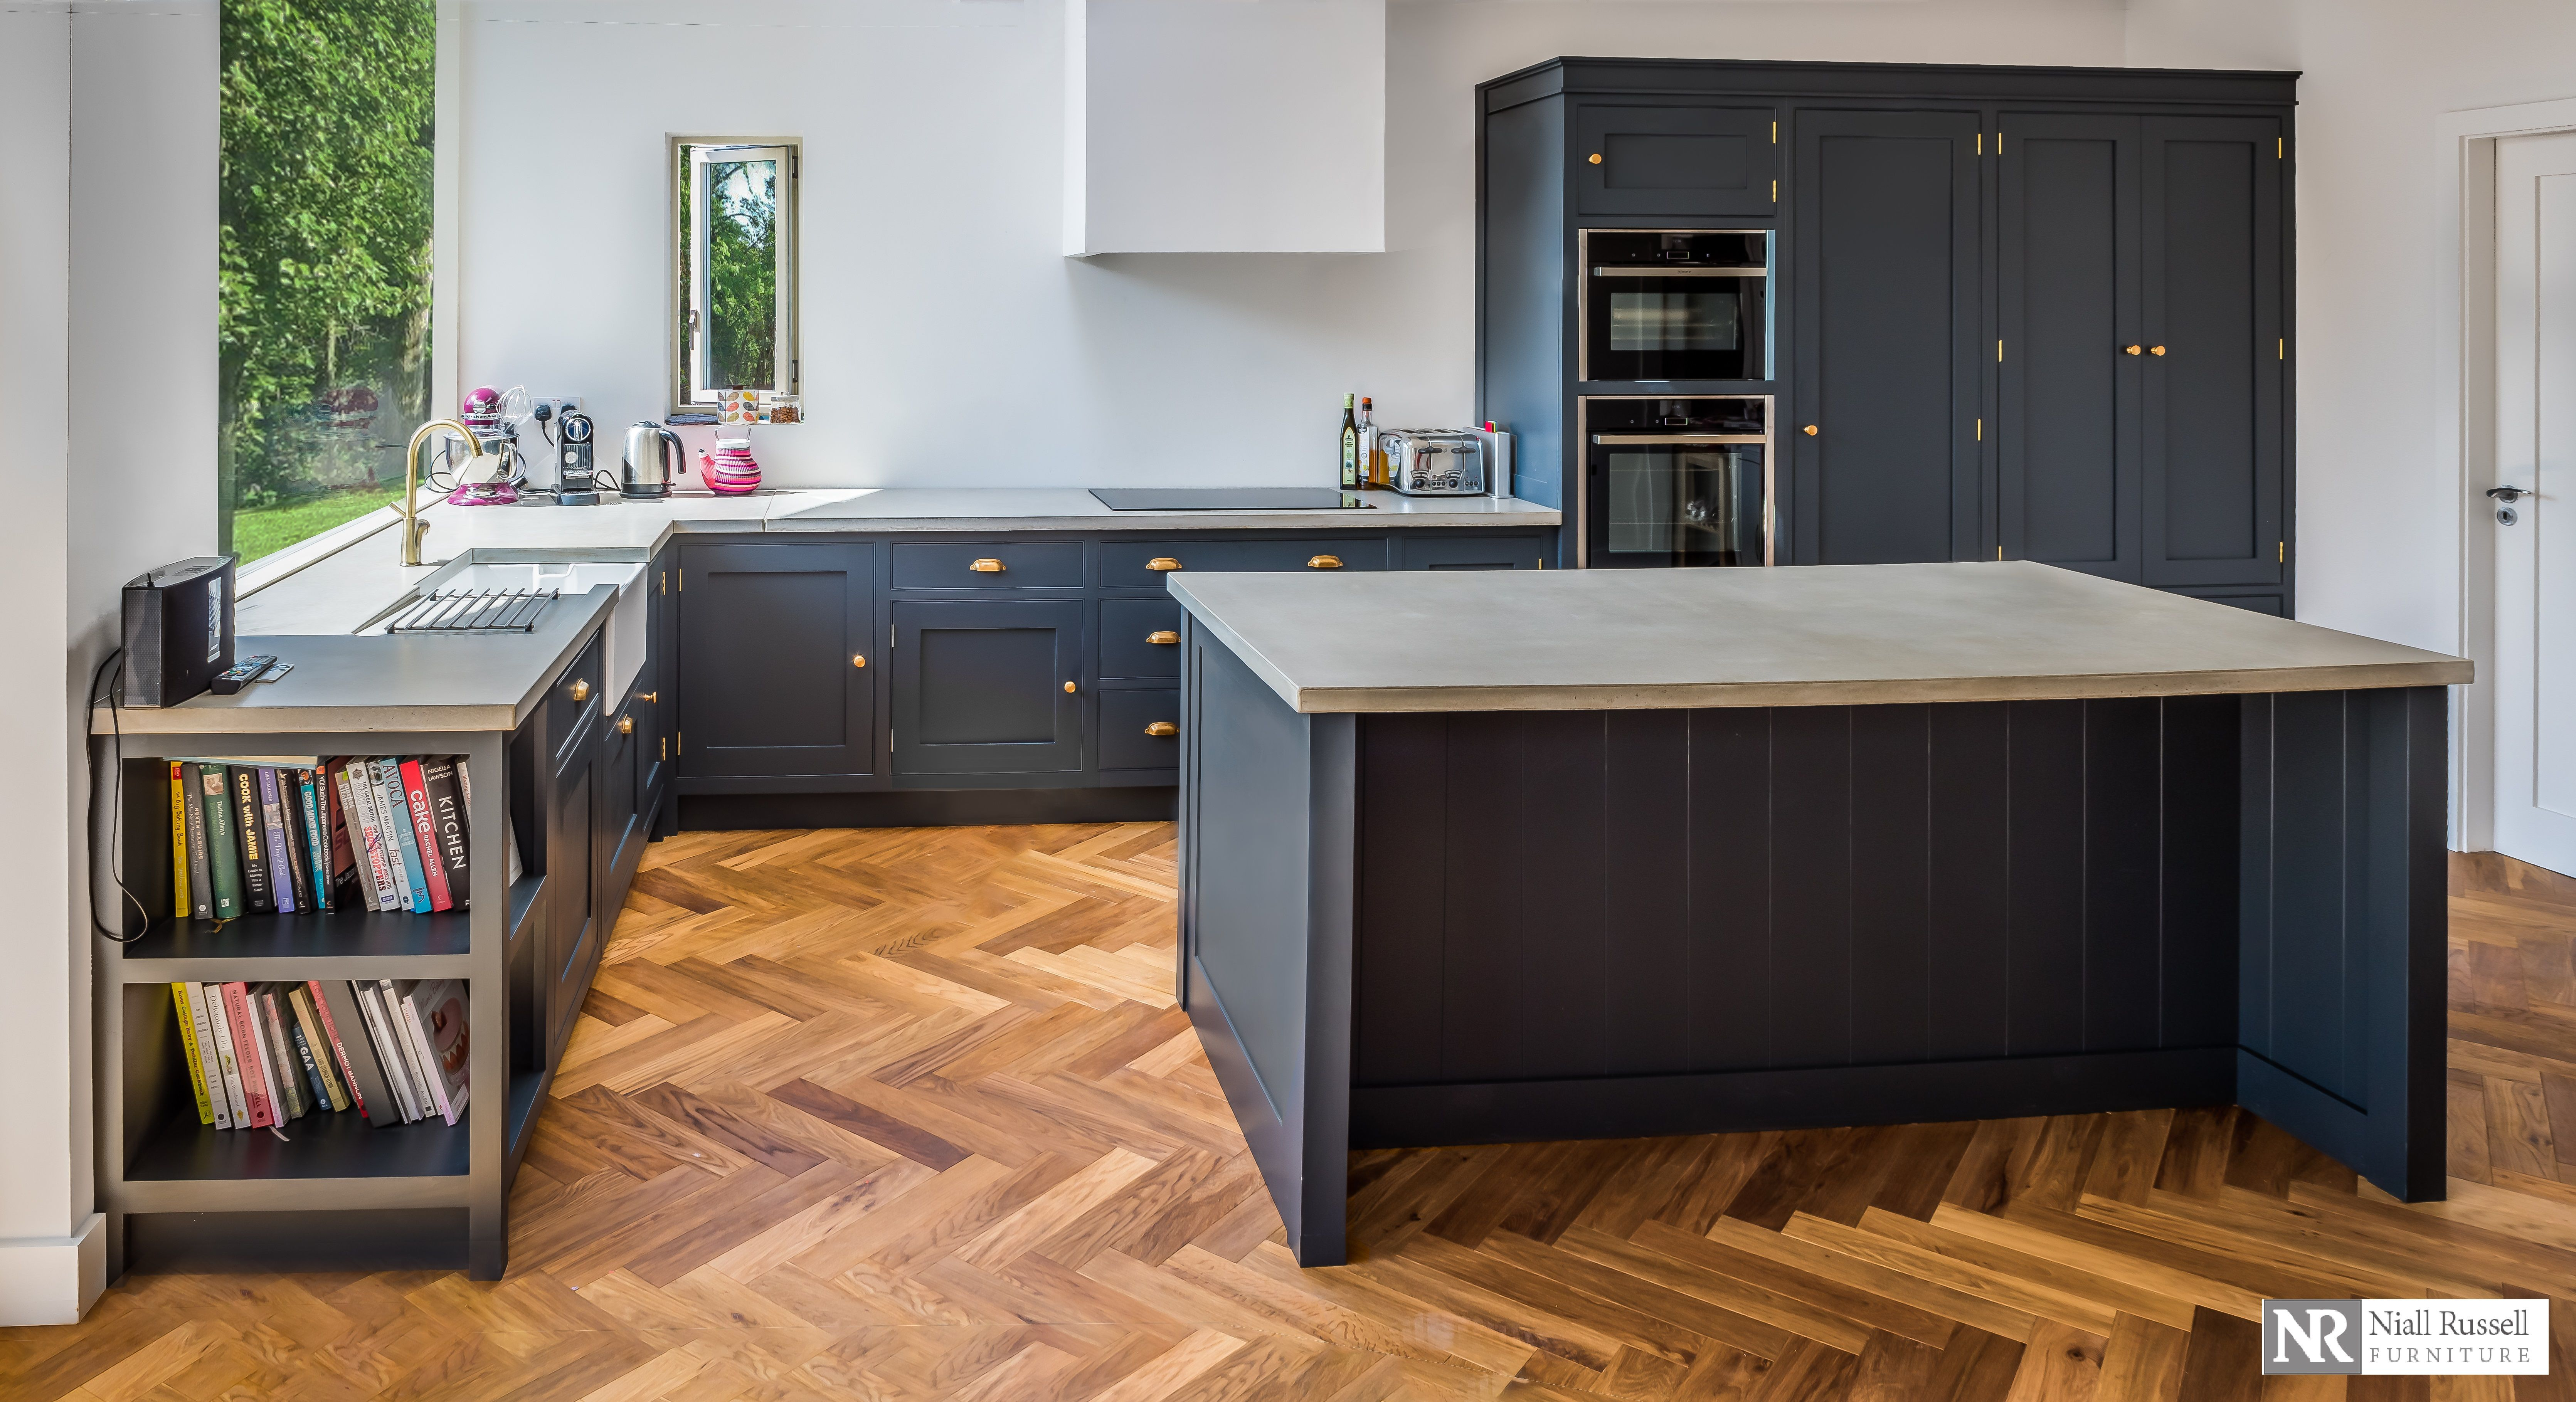 Niall Russell Furniture Inframe Kitchens And Bespoke Hand Painted